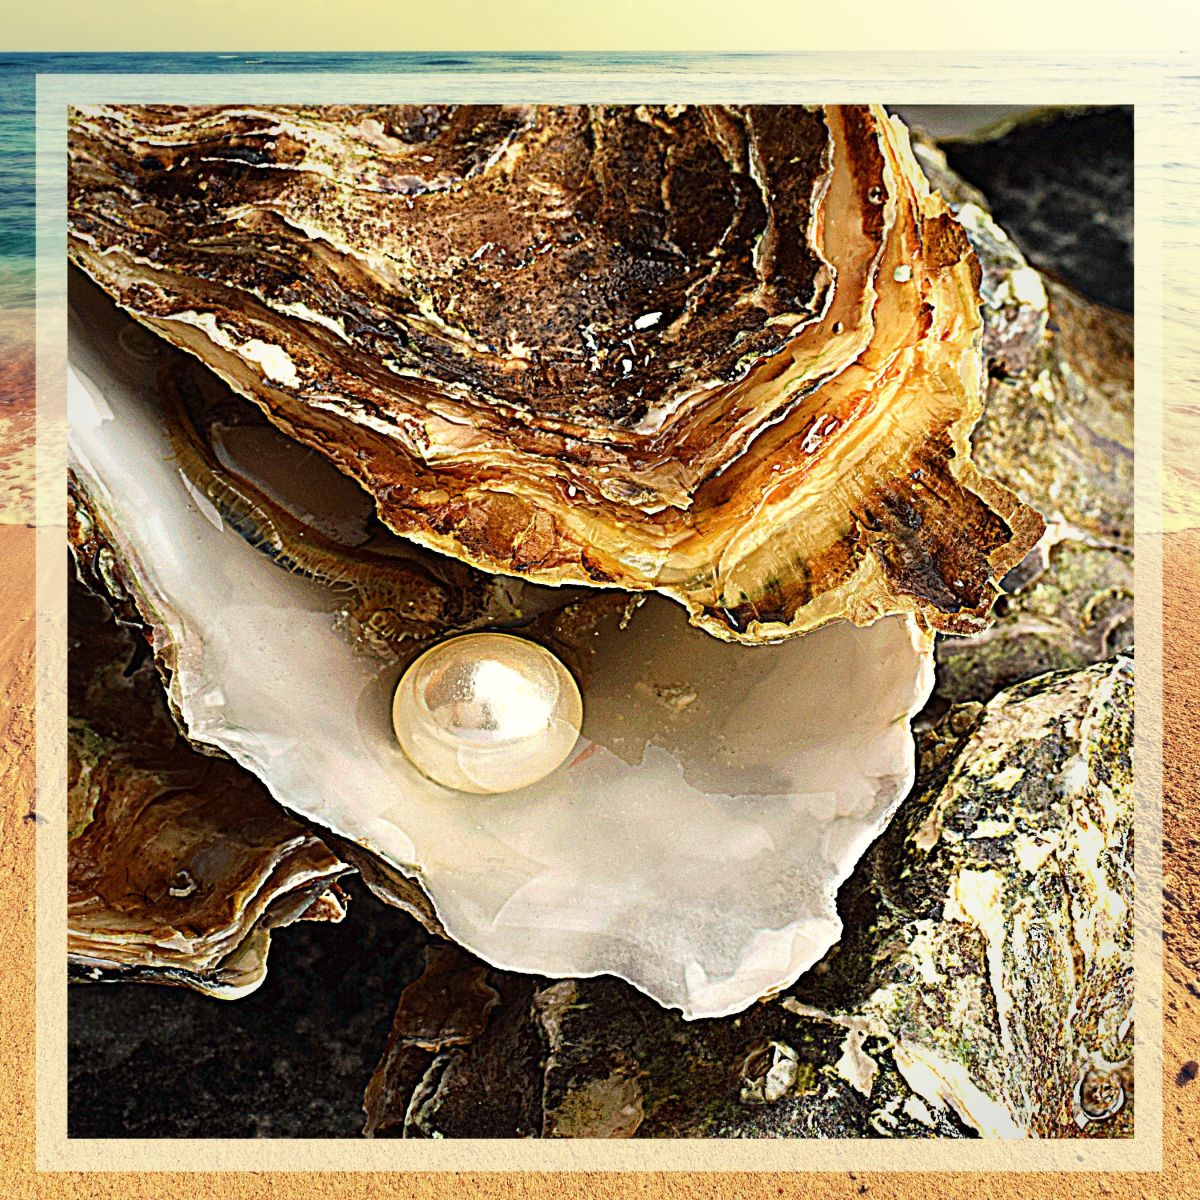 Did you know that most of the pearls used in jewelry are cultivated specifically for that purpose?